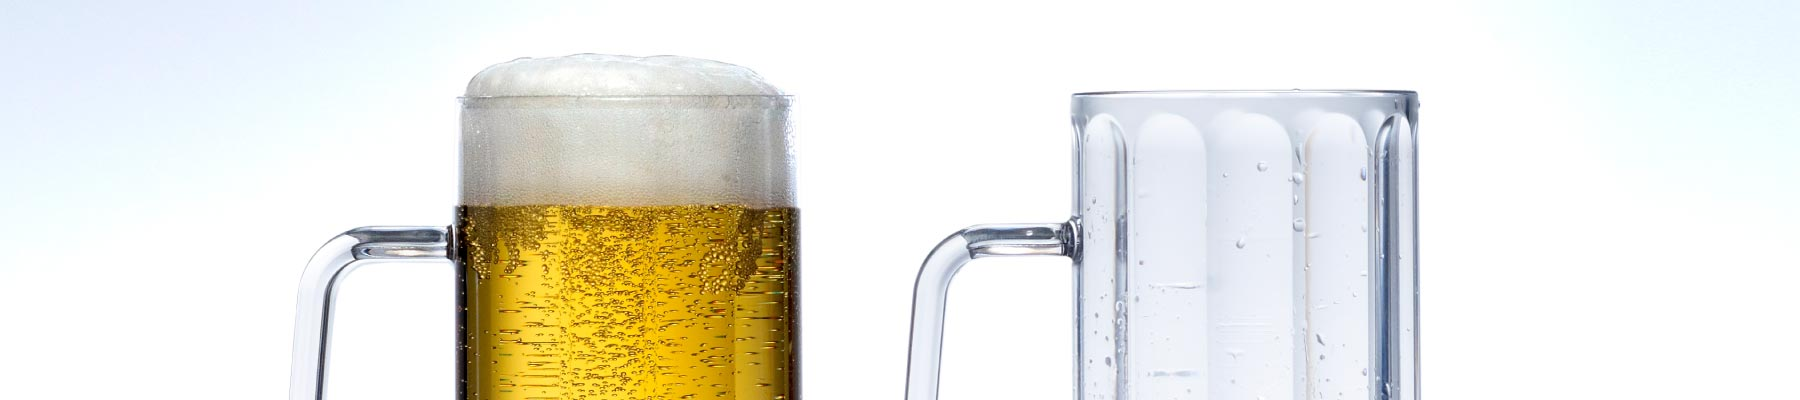 plastic reusable barware beer jugs for catering in hampshire